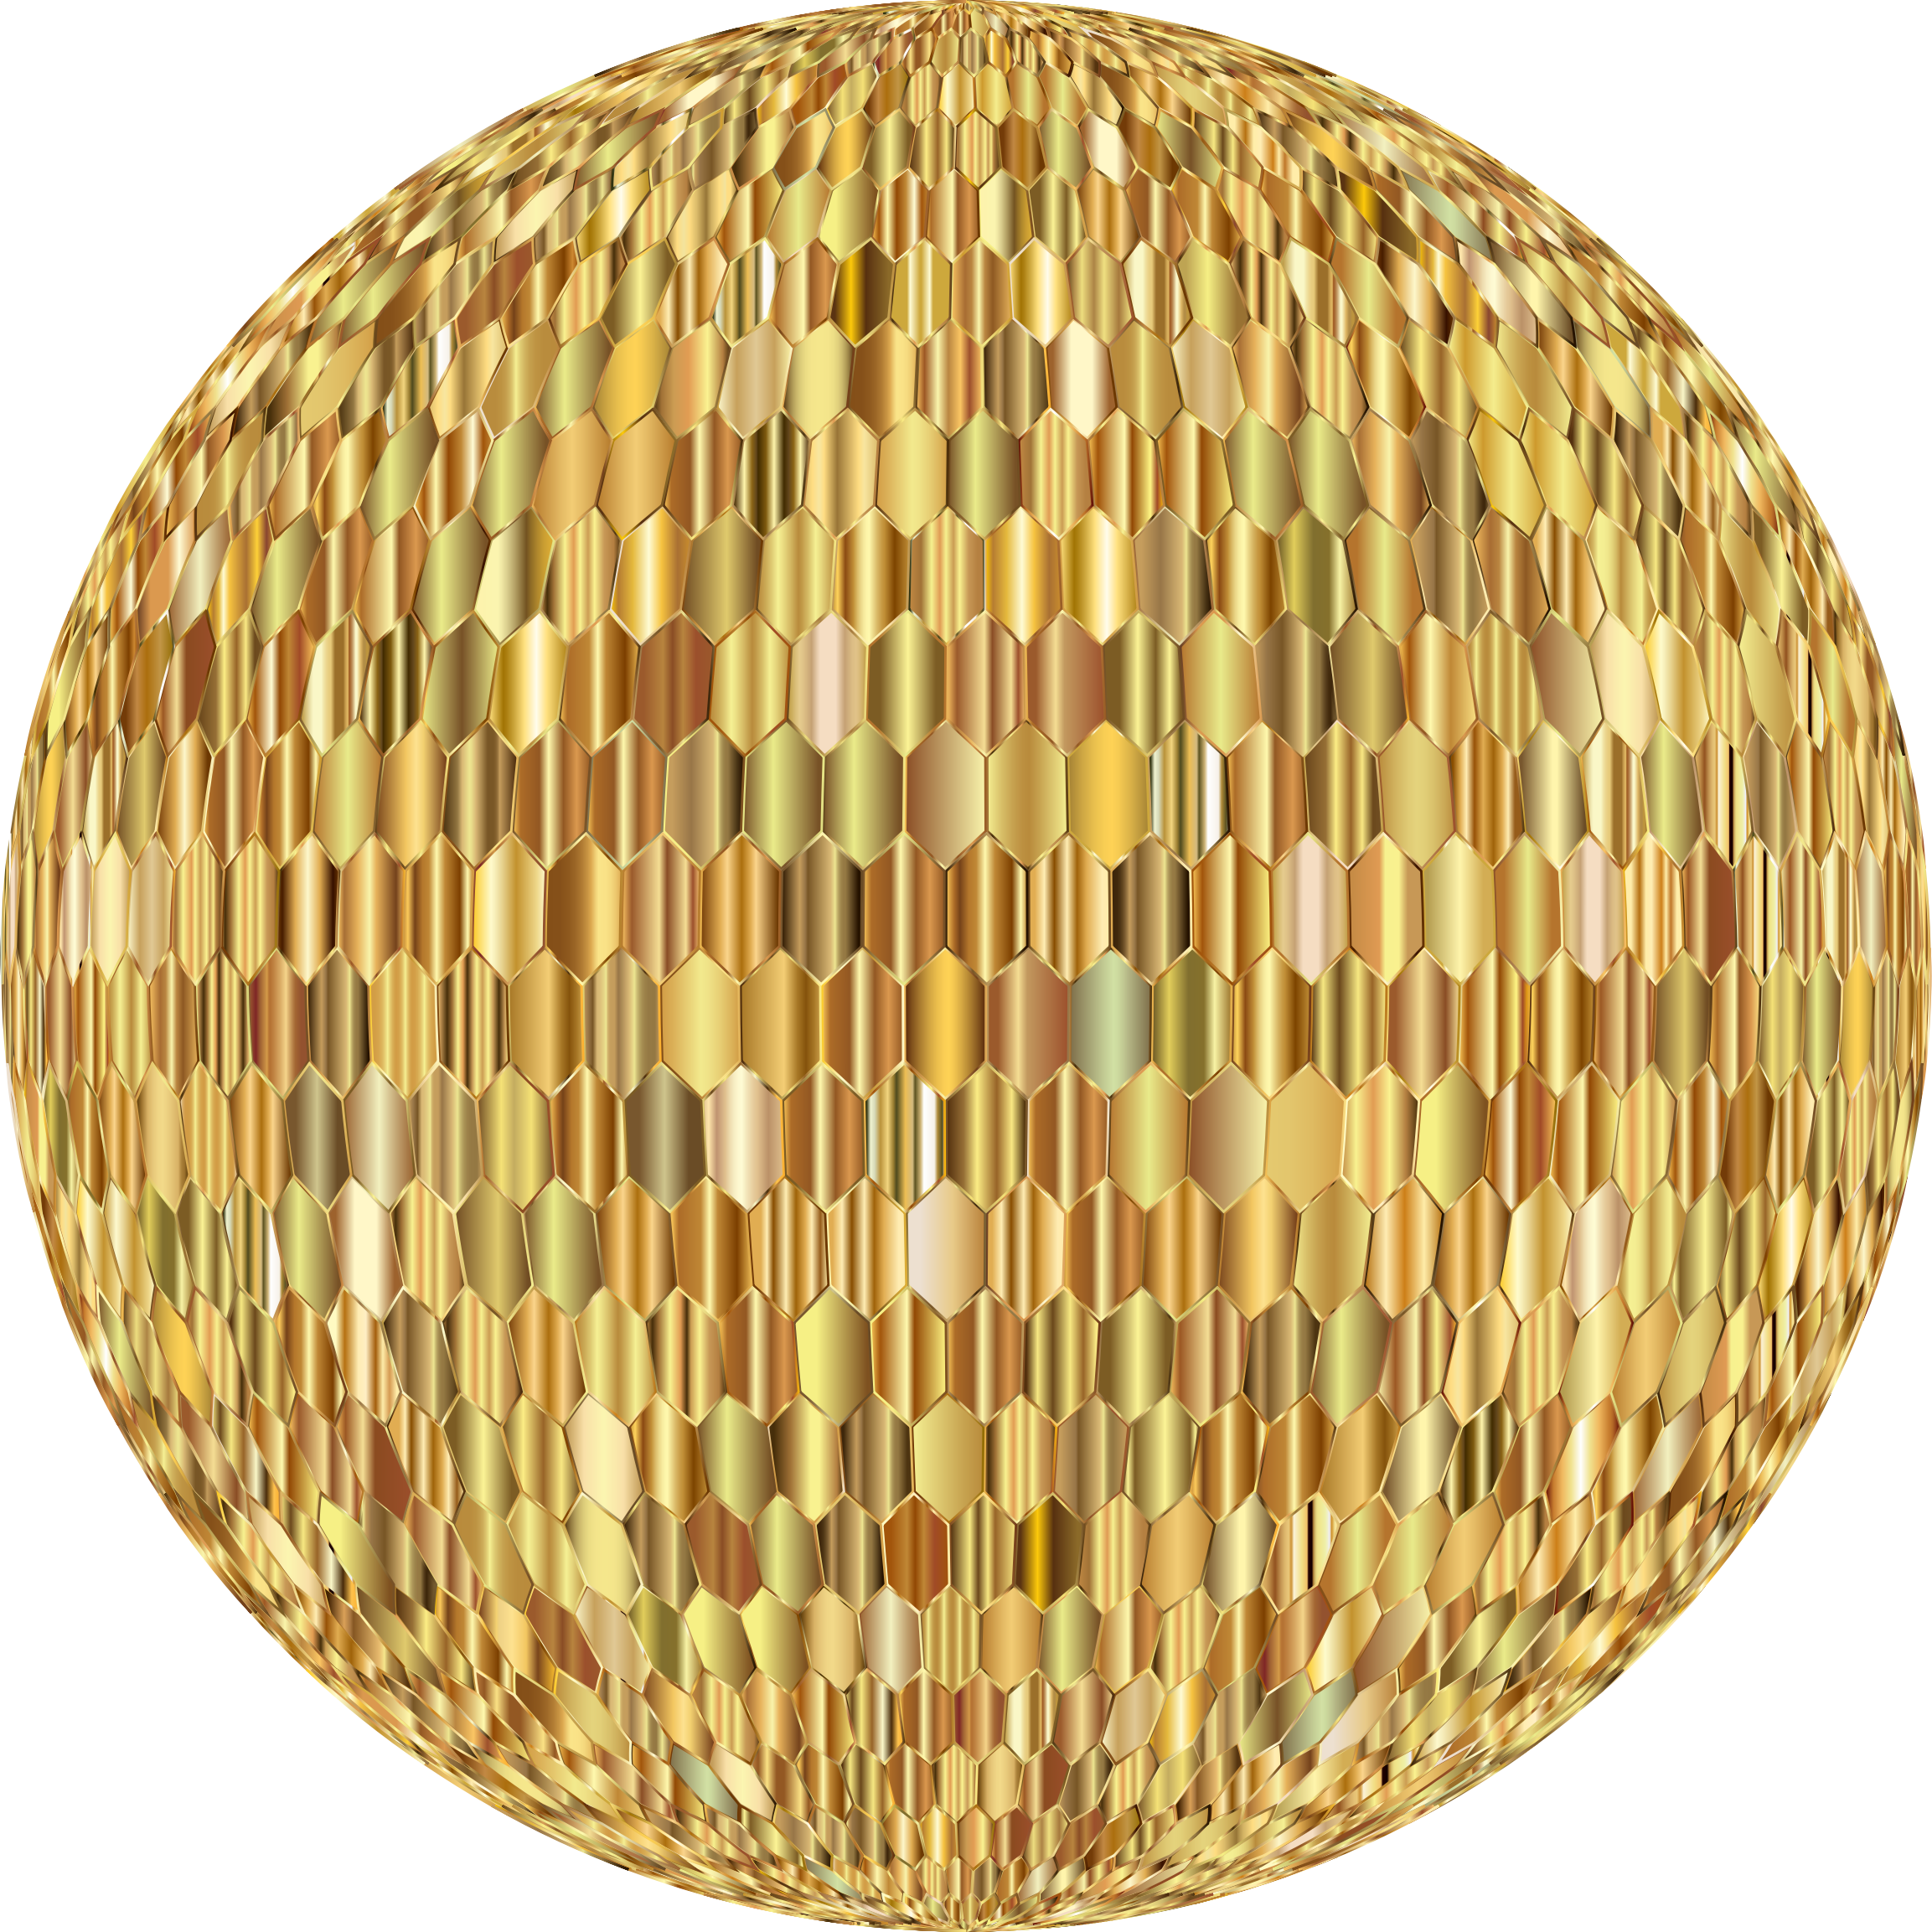 Prismatic Hexagonal Grid Sphere Variation 2 9 by GDJ